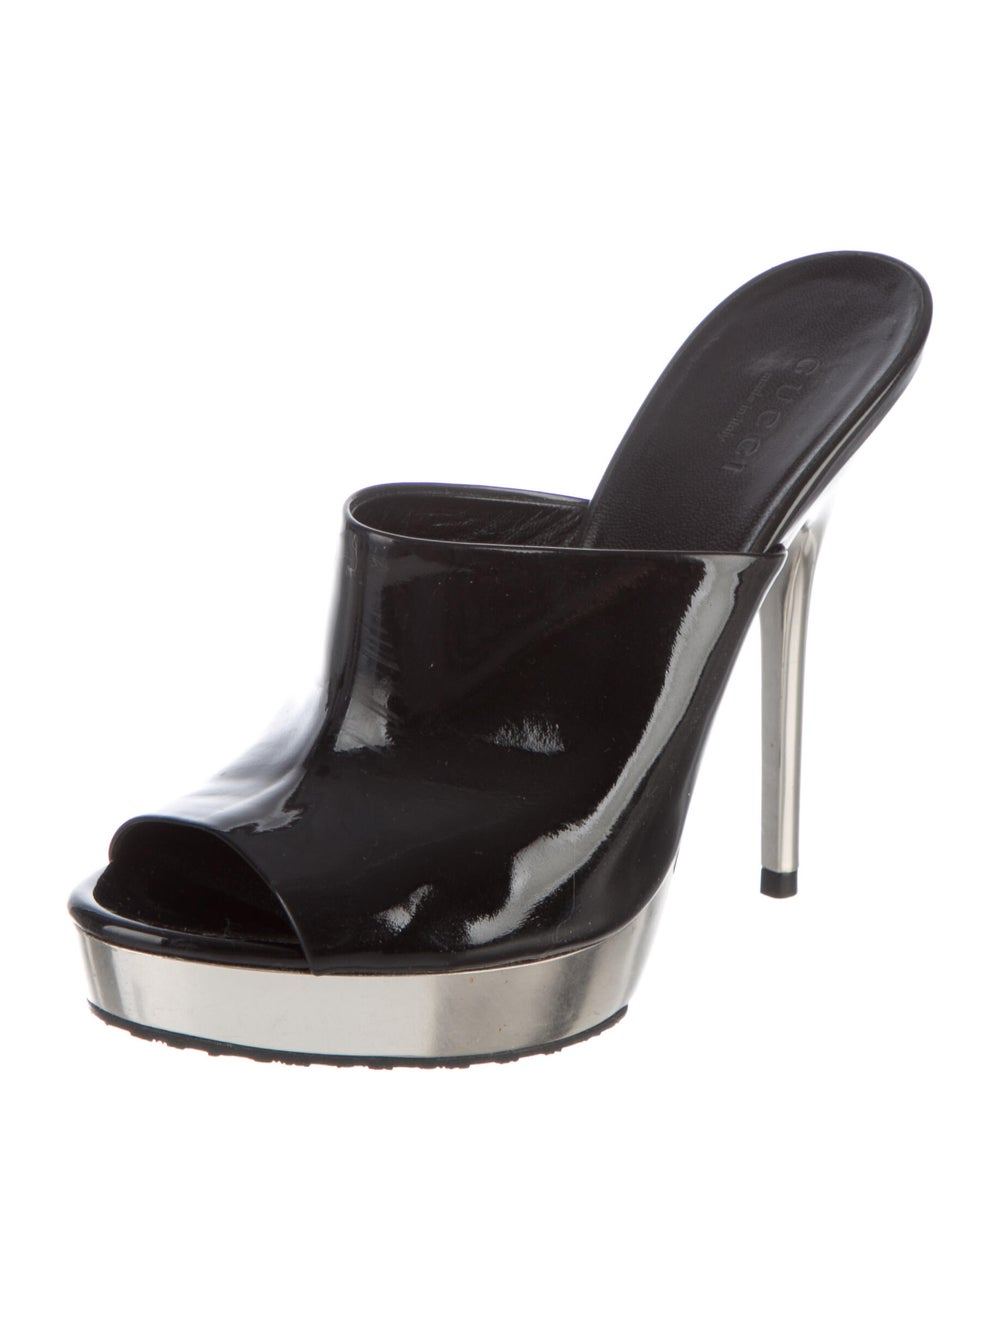 Gucci Patent Leather Mules Black - image 2